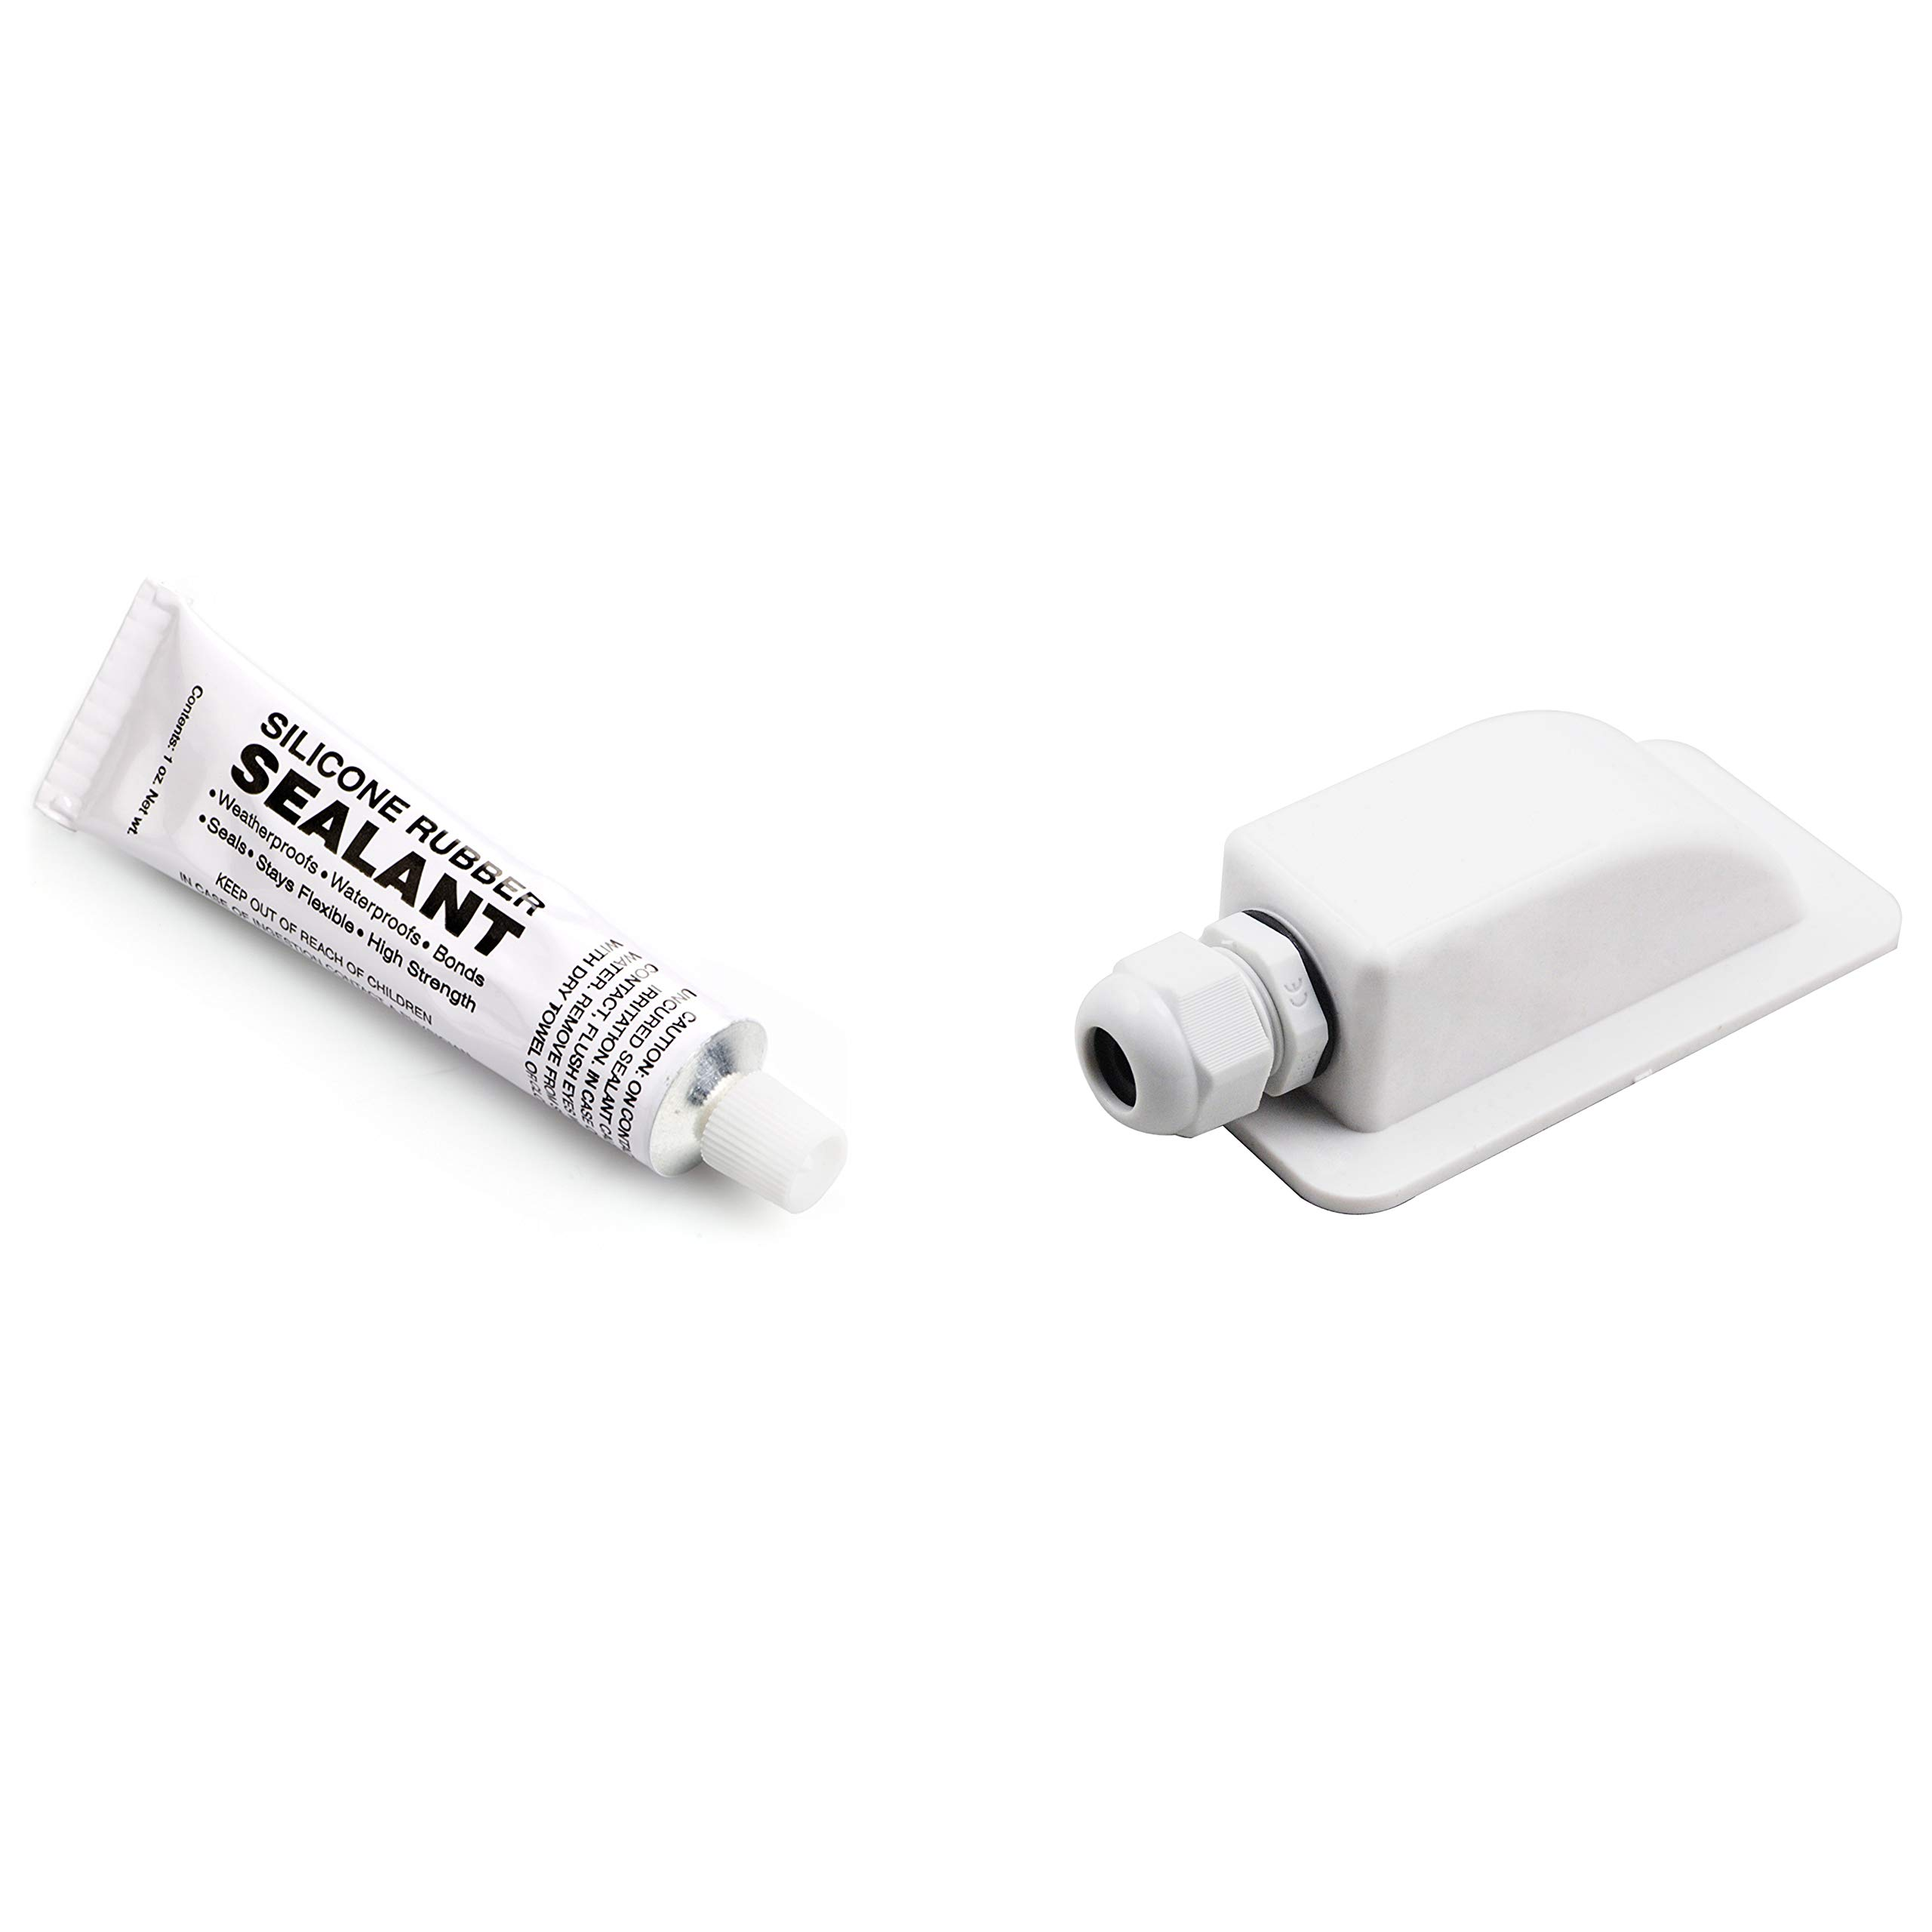 PROLINE Solar Weatherproof ABS Solar Double Cable Entry Gland with Sealant for RV, Boat or Wherever You Need a Water Tight Connection. (Single, White)